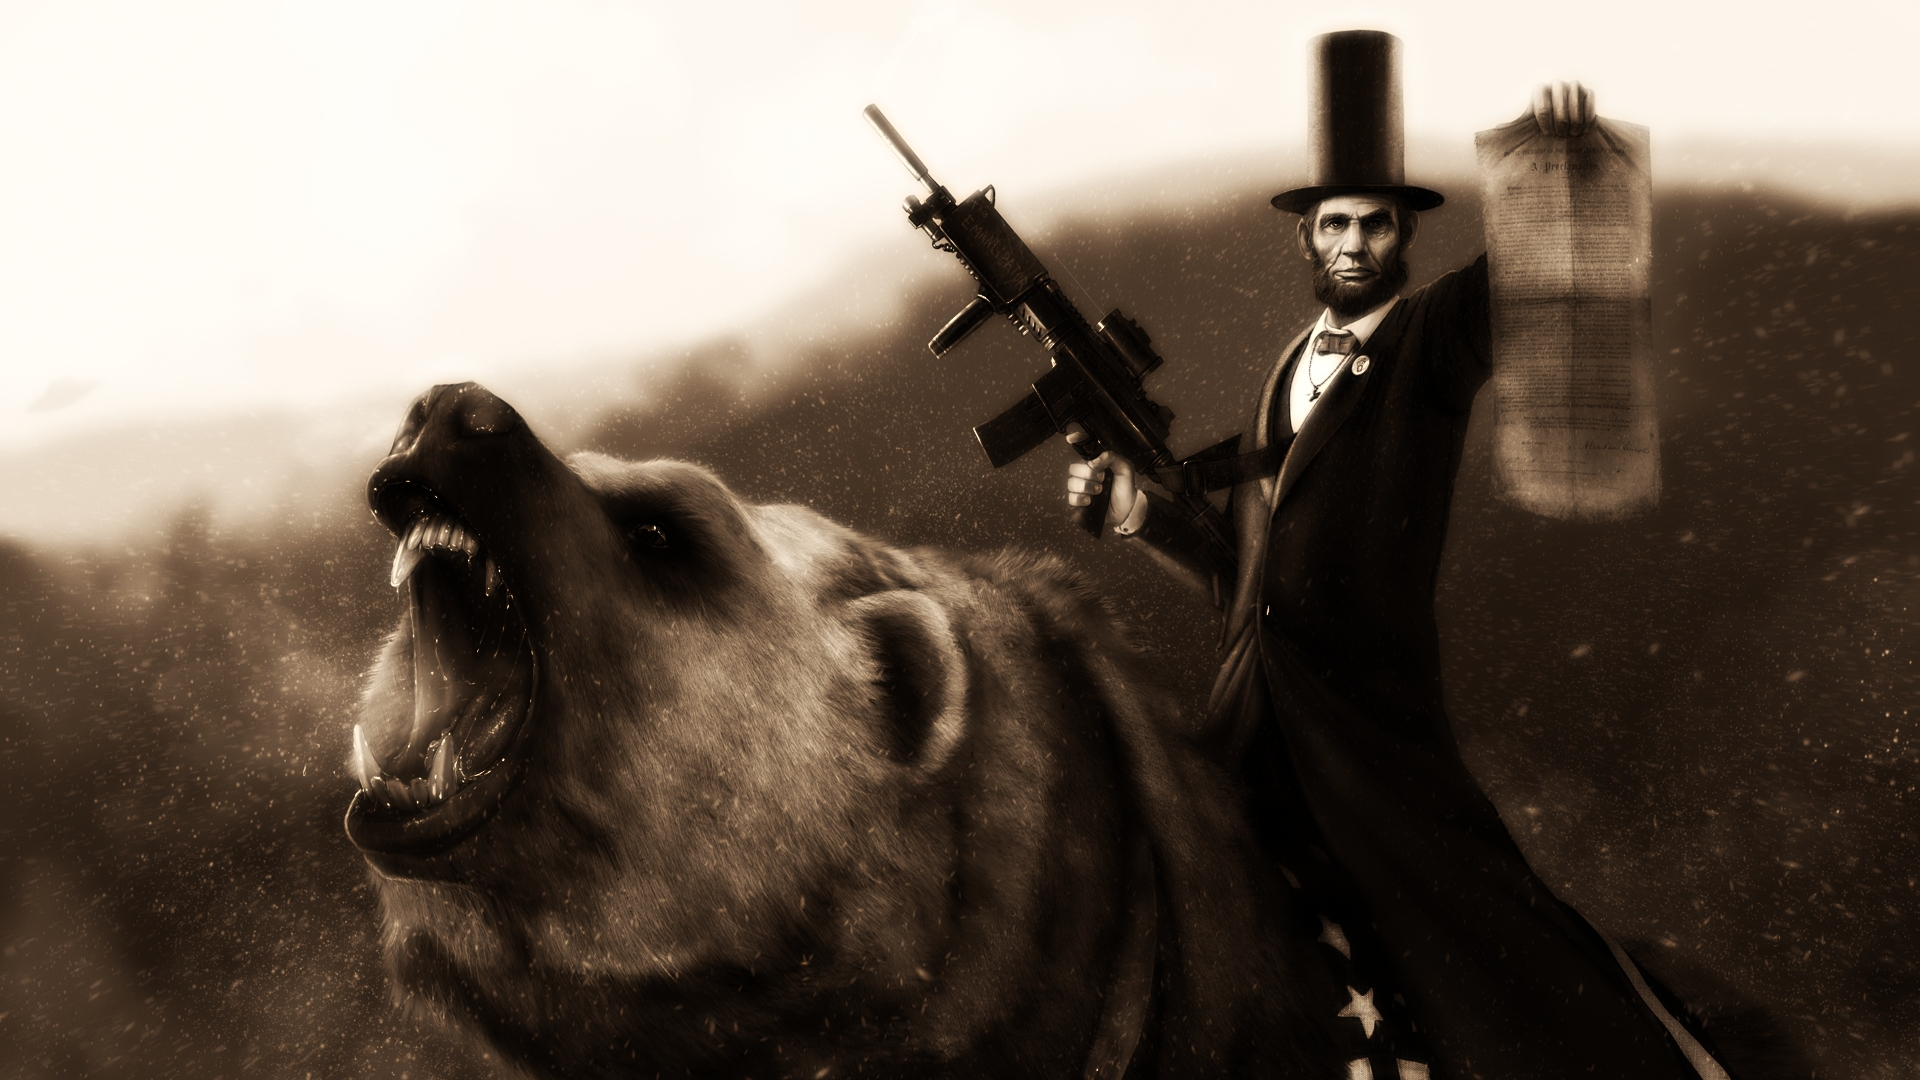 Download Wallpapers Download 1920x1080 abraham lincoln 1920x1080